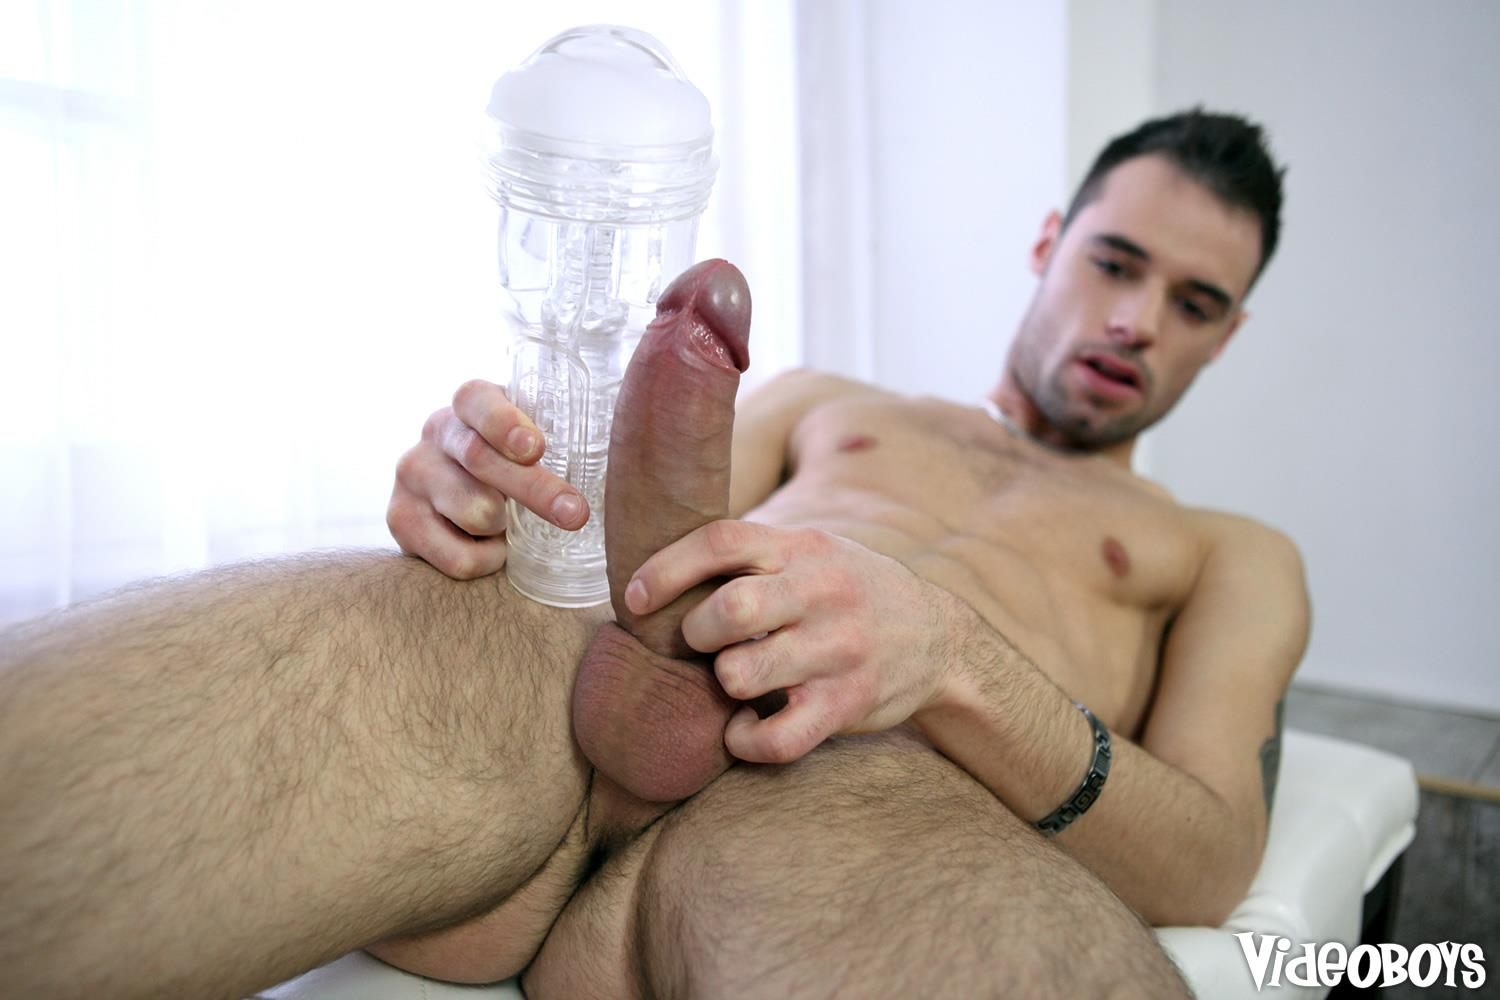 VideoBoyz-Marco-Gagnon-Huge-Uncut-Cock-In-A-Fleshlight-Amateur-Gay-Porn-10 Horny Young Guy Busts Open A Fleshlight With His Big Uncut Cock